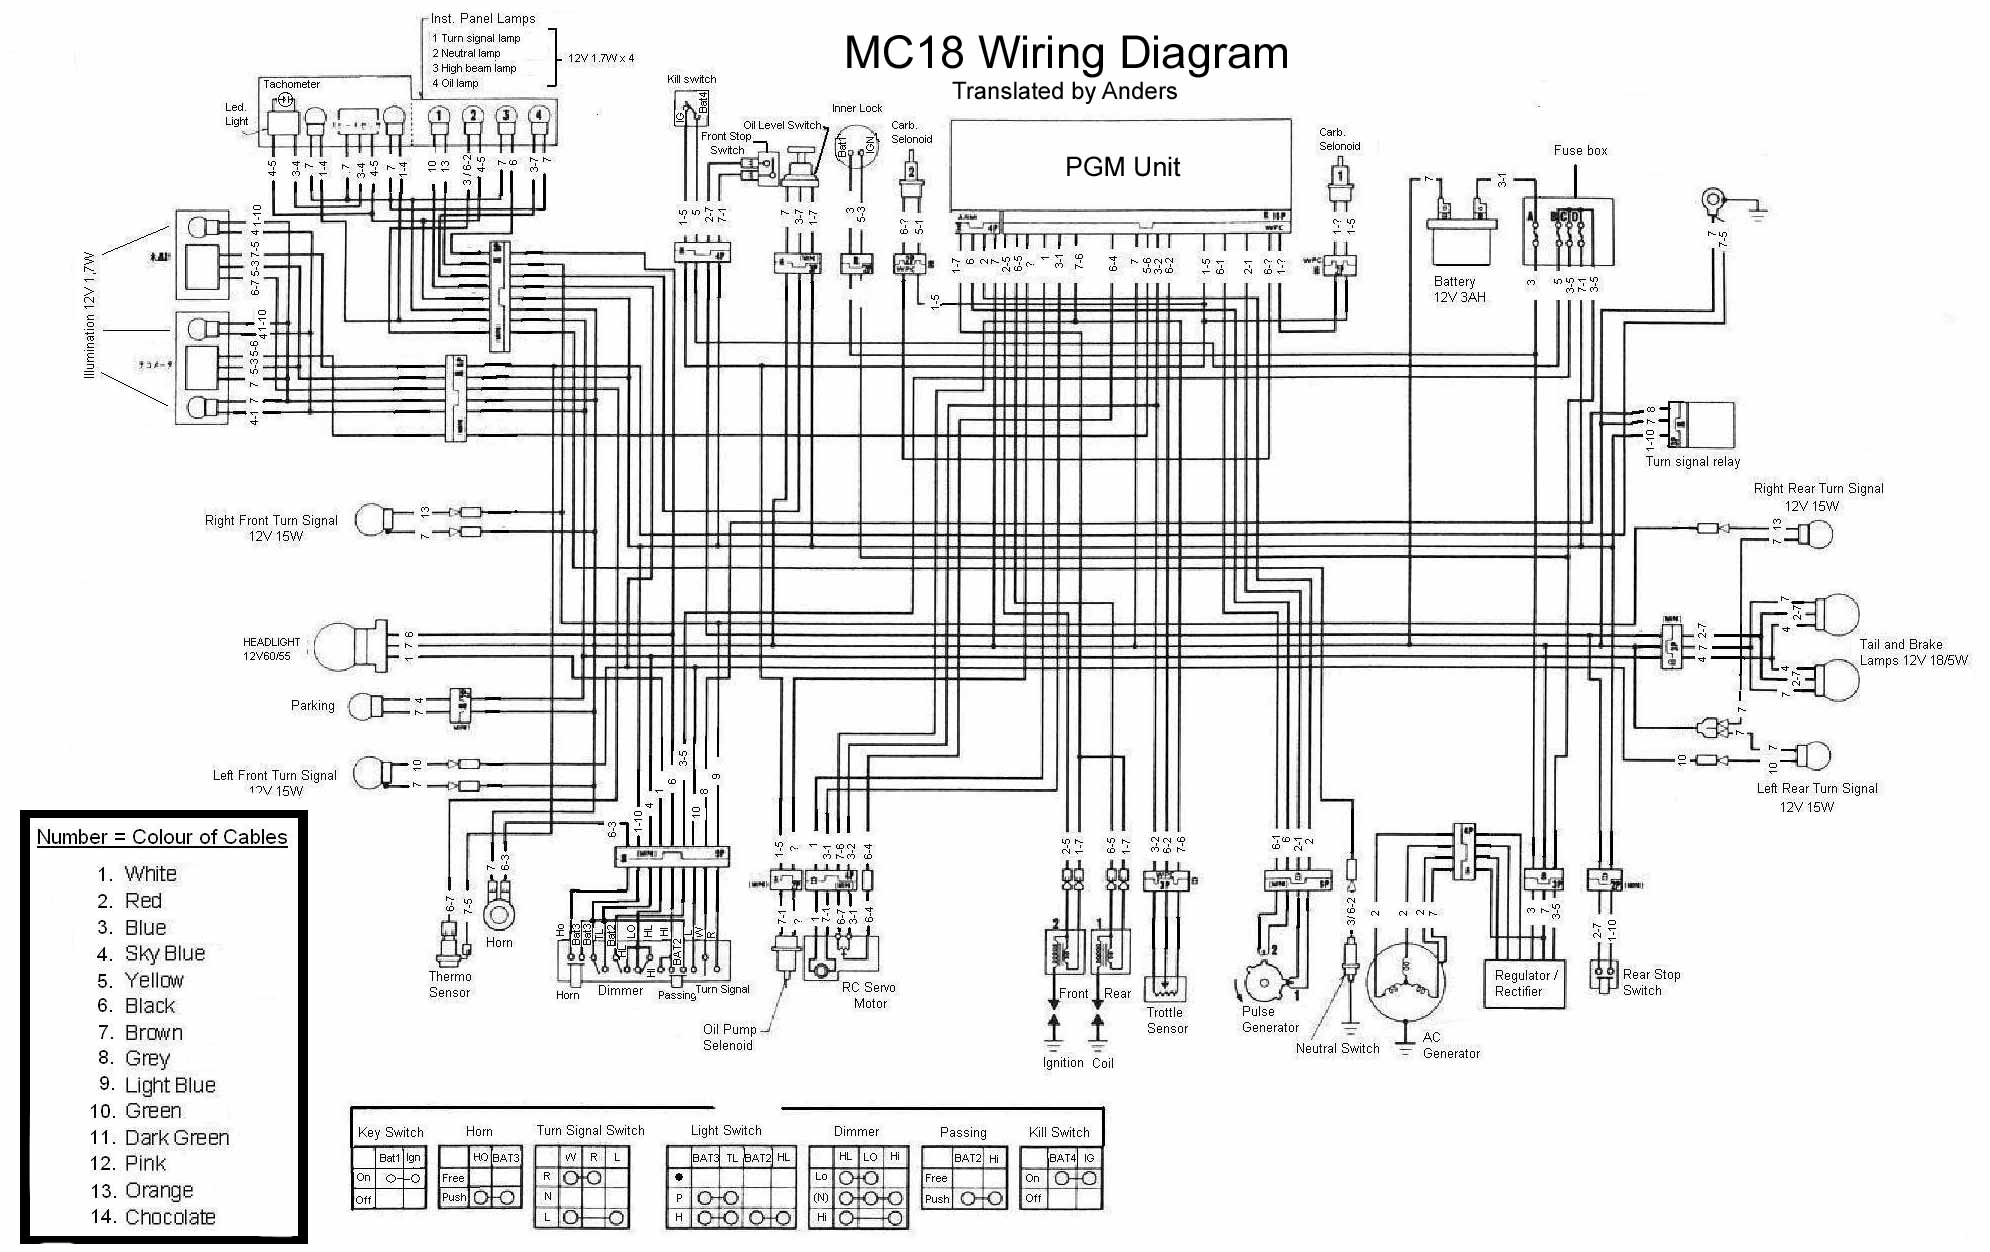 Ktm 200 Wiring Diagram Introduction To Electrical Diagrams 2003 Photo Album Honda Mc18 Nsr250 Rc Duke Speedometer